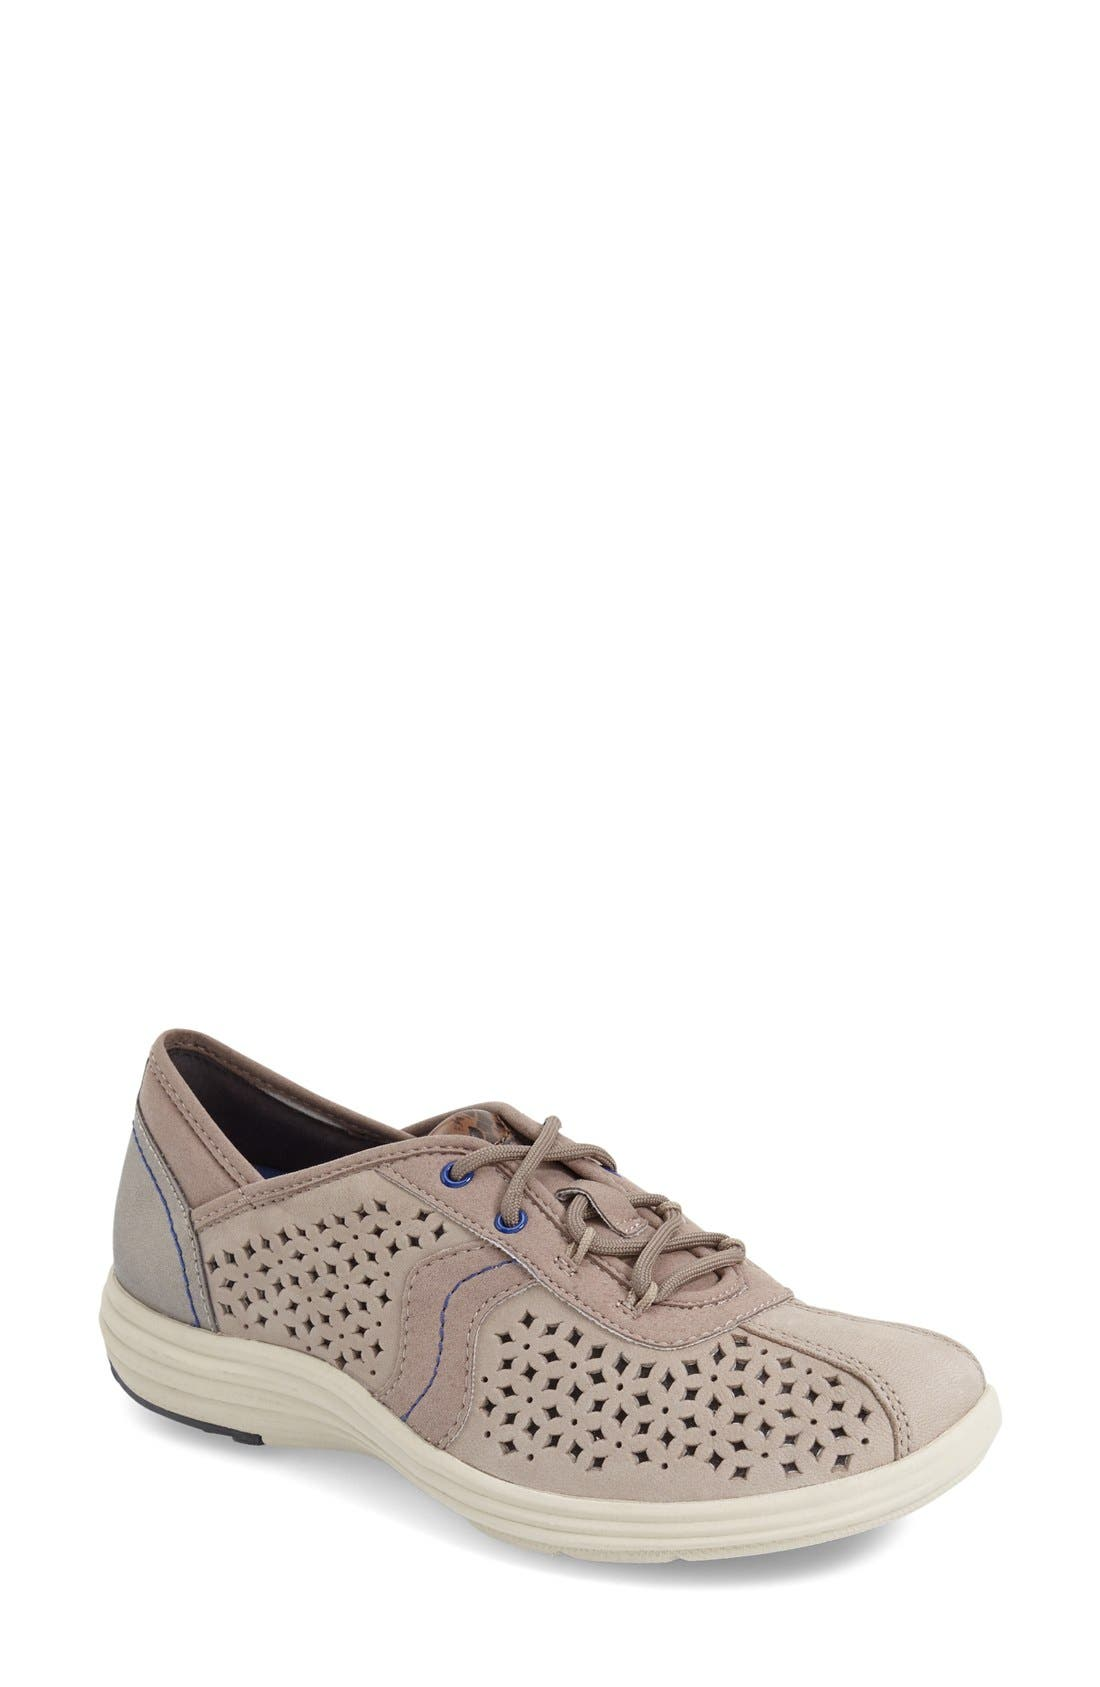 ARAVON,                             'Betty' Sneaker,                             Main thumbnail 1, color,                             GREY LEATHER